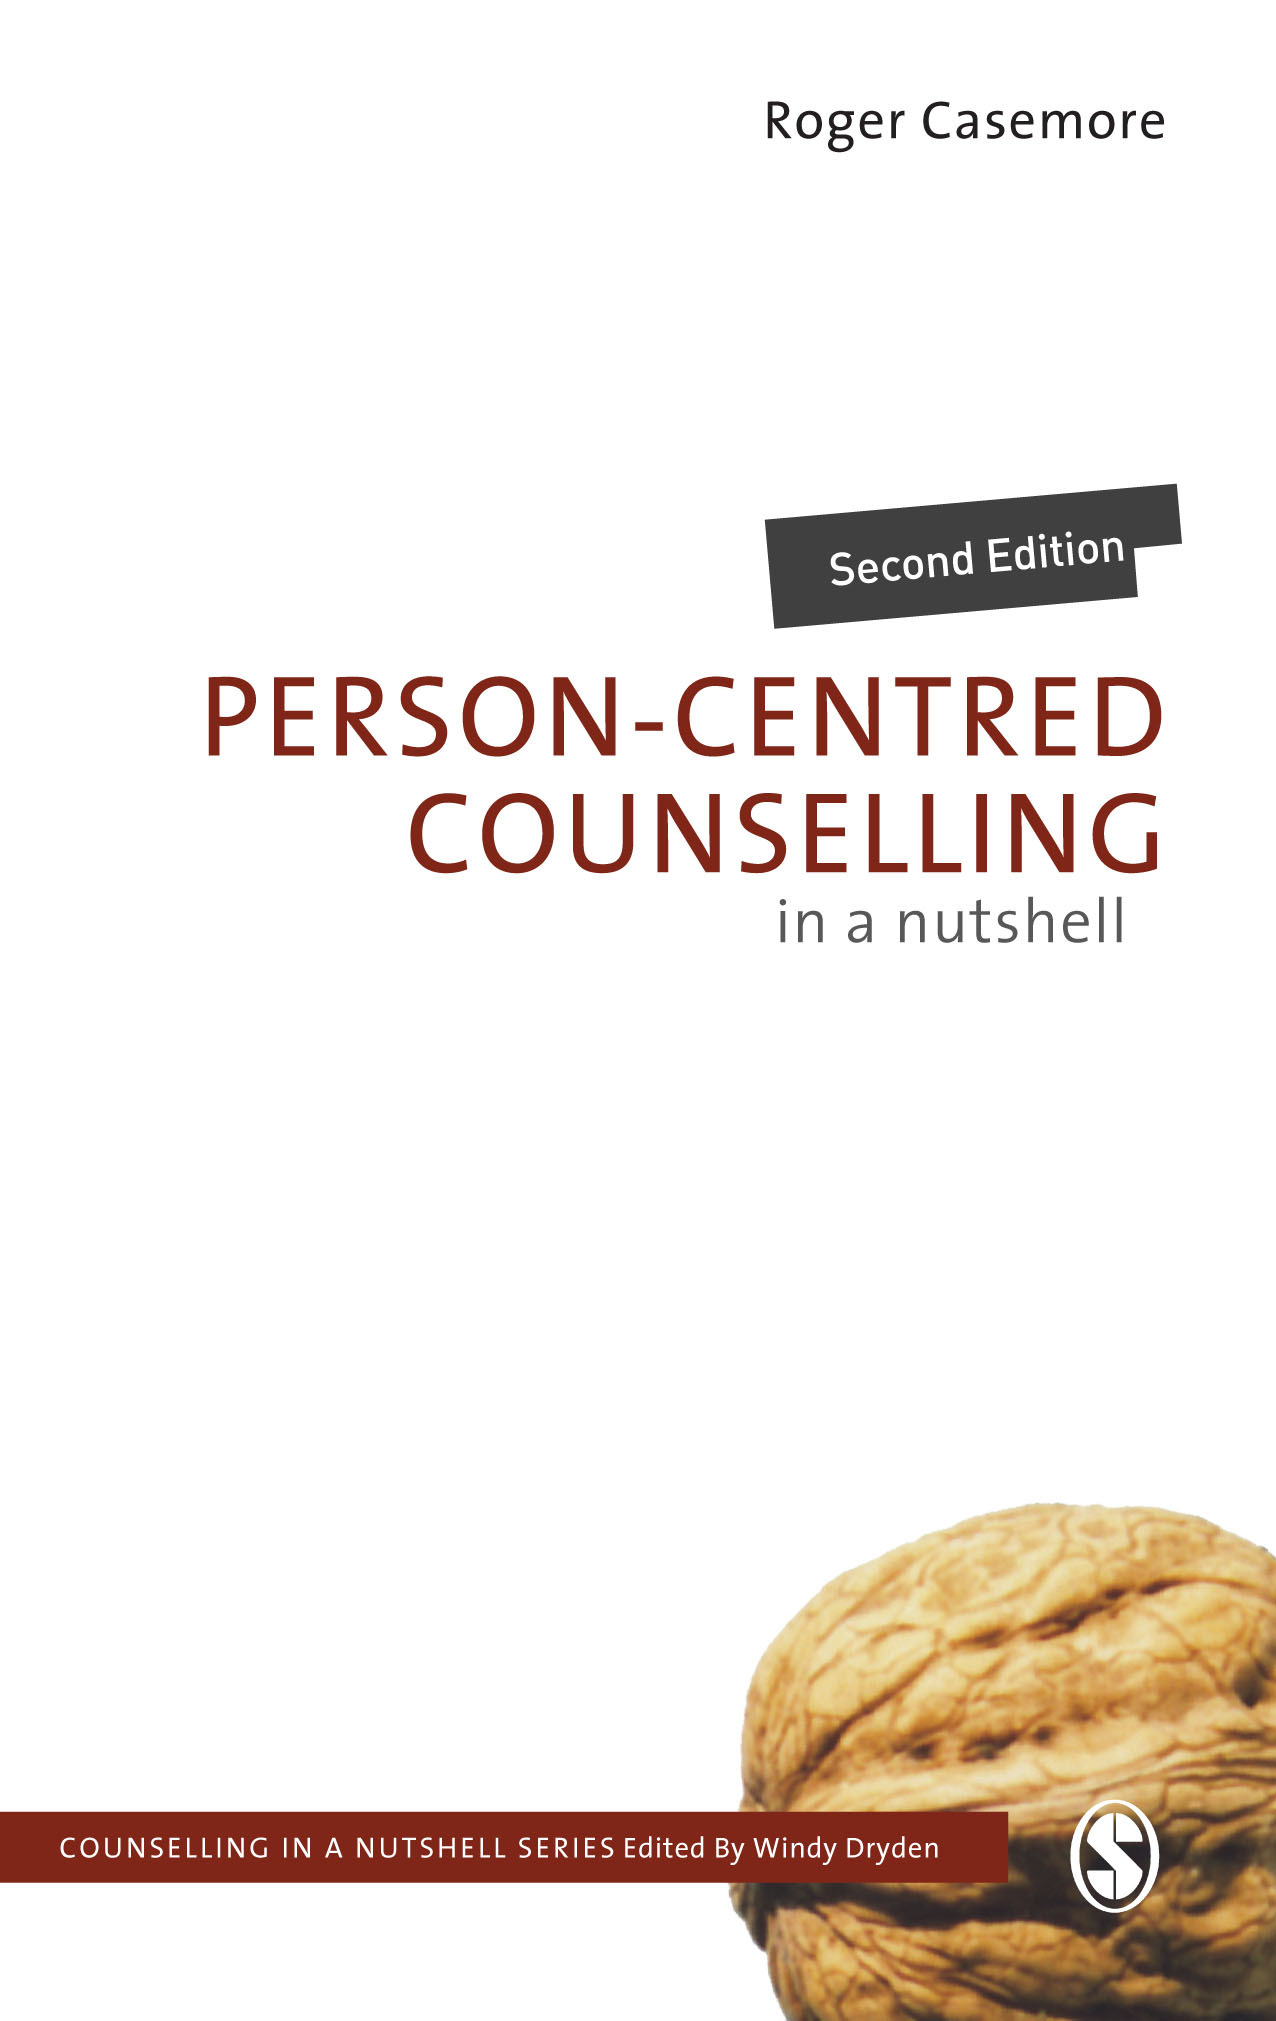 Person-Centred Counselling in a Nutshell book cover image